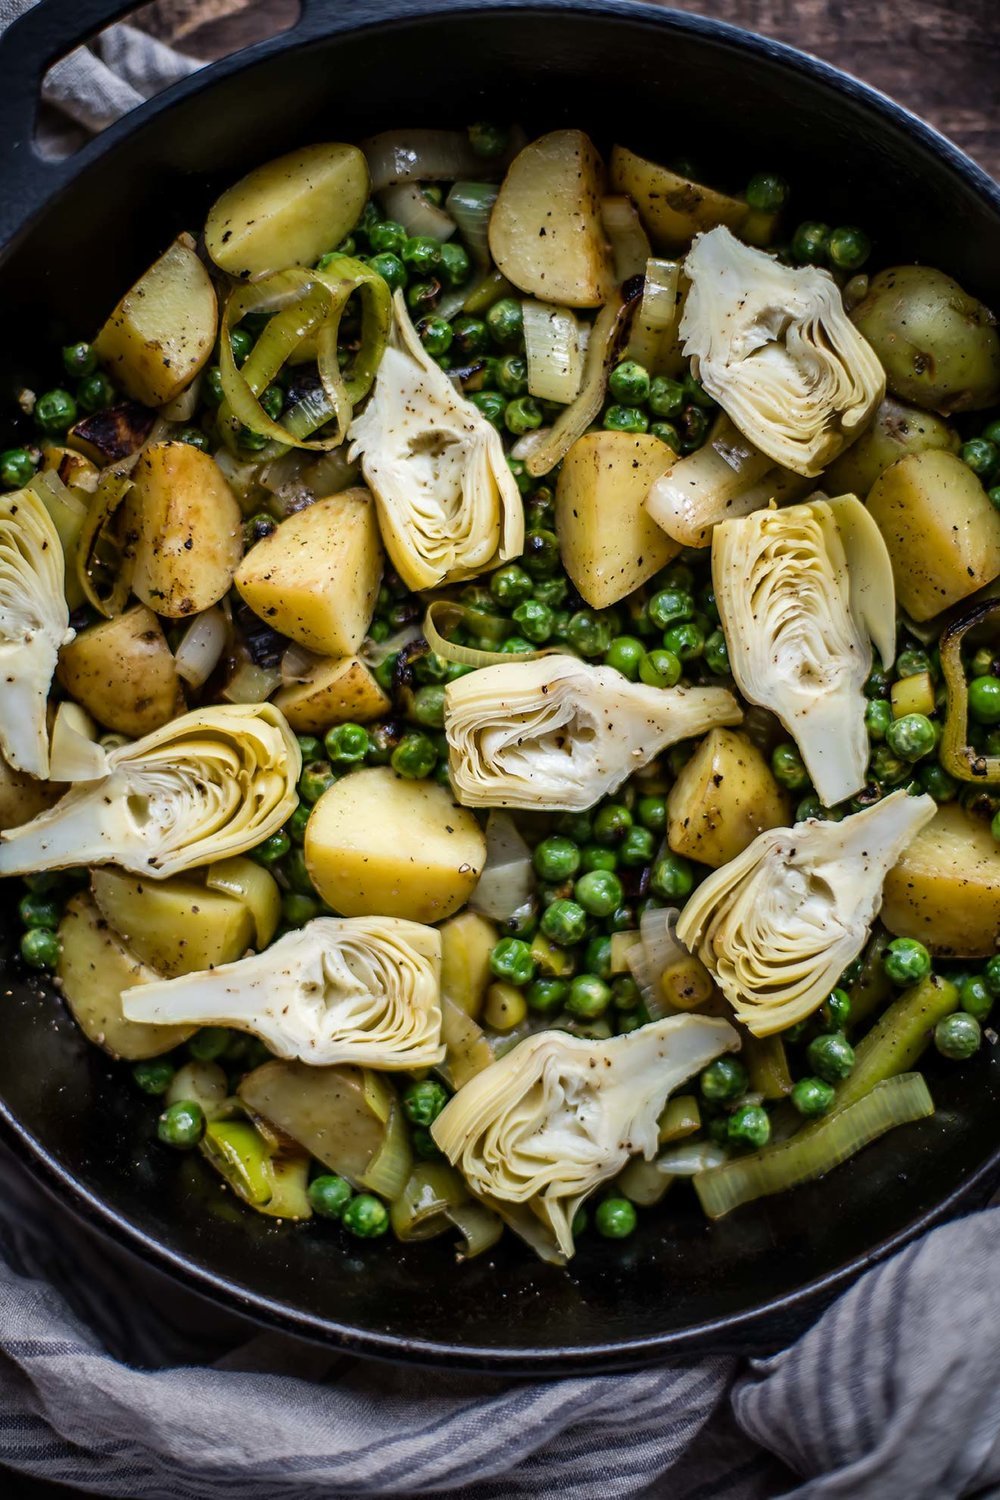 Spring Sauté with New Potatoes, Peas, Leeks & Artichokes